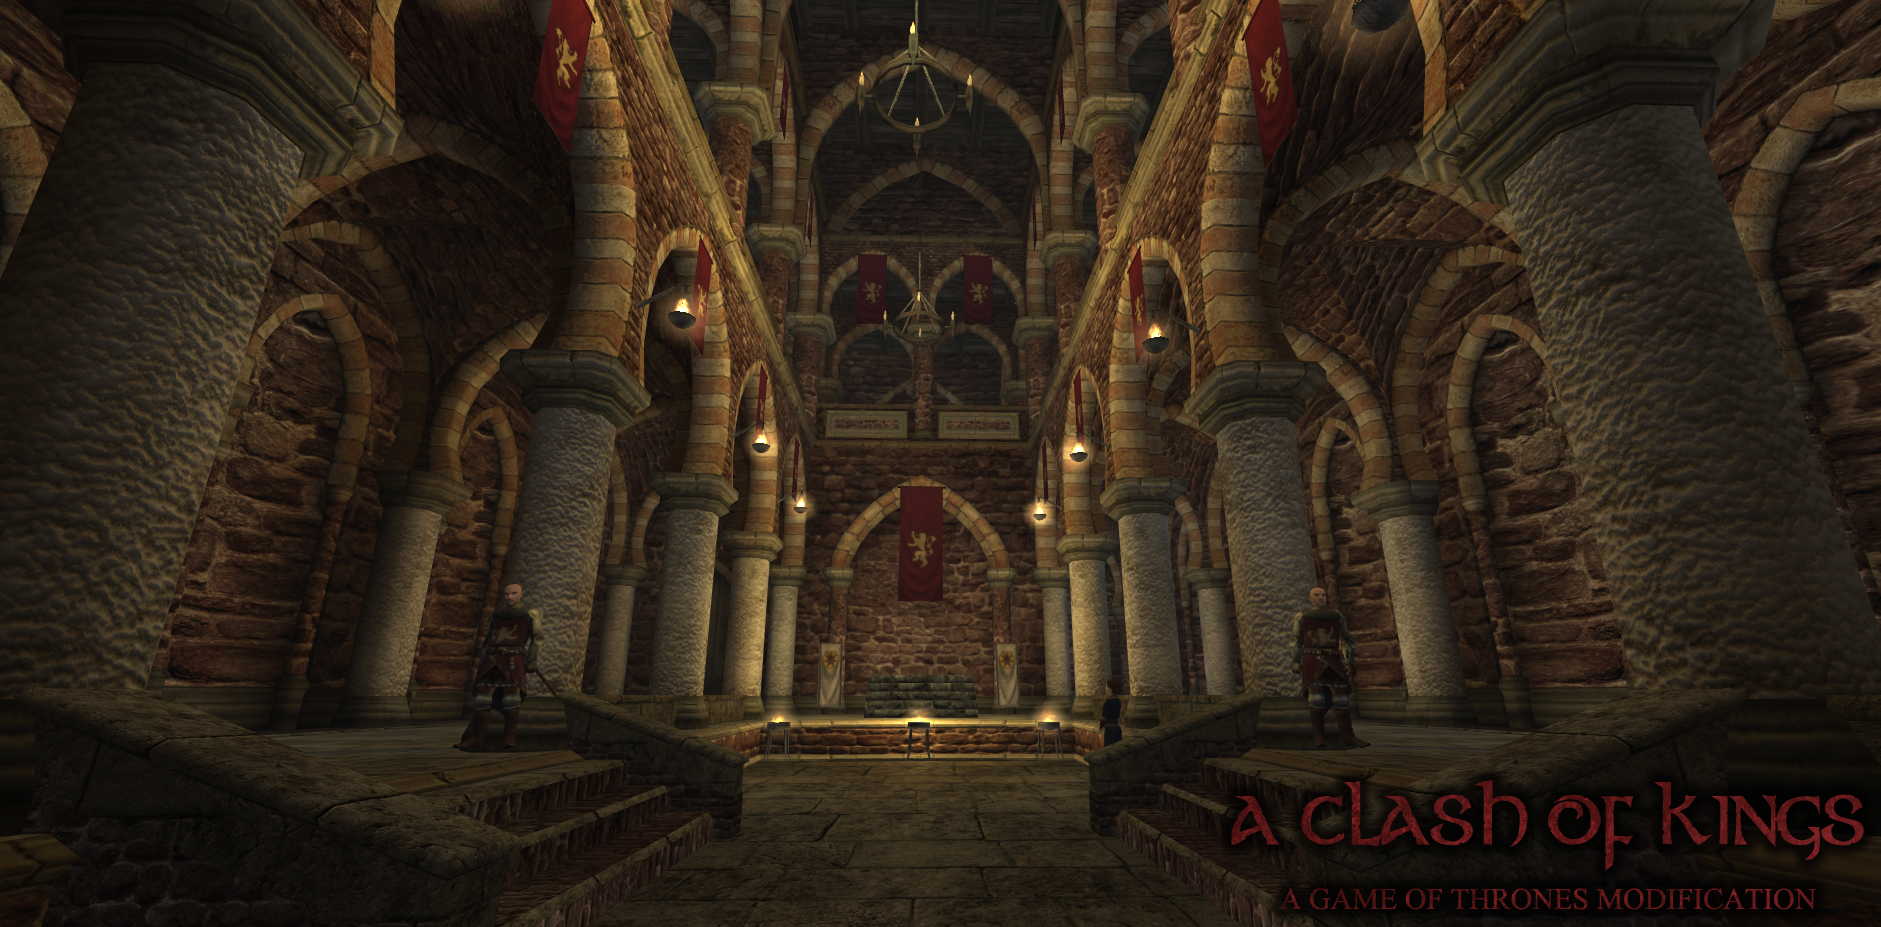 The Red Keep Courtroom Image A Clash Of Kings Game Of